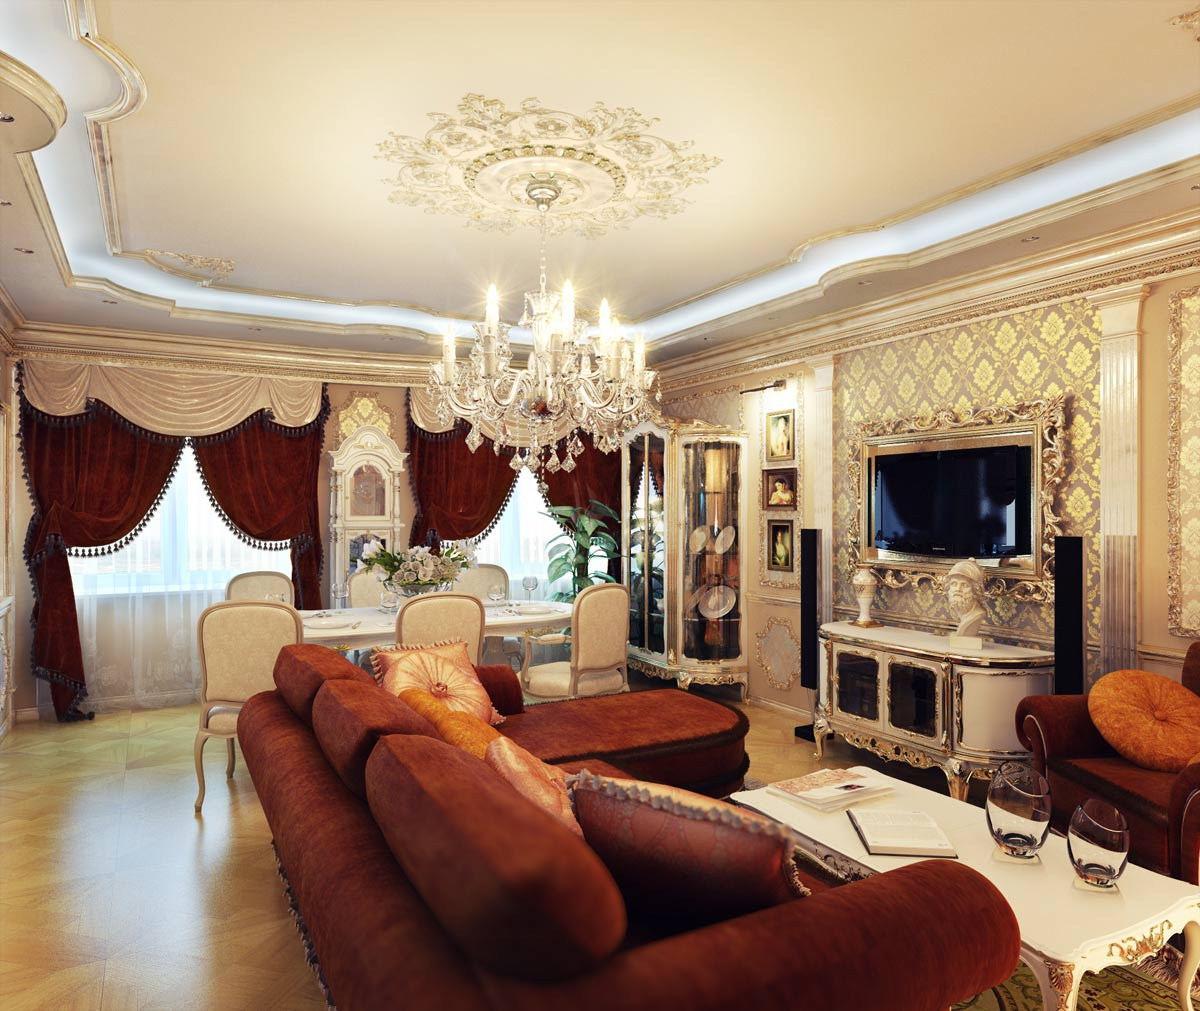 Nice Classic Interior Of The Living Room In The Old Roman Style Awesome Design